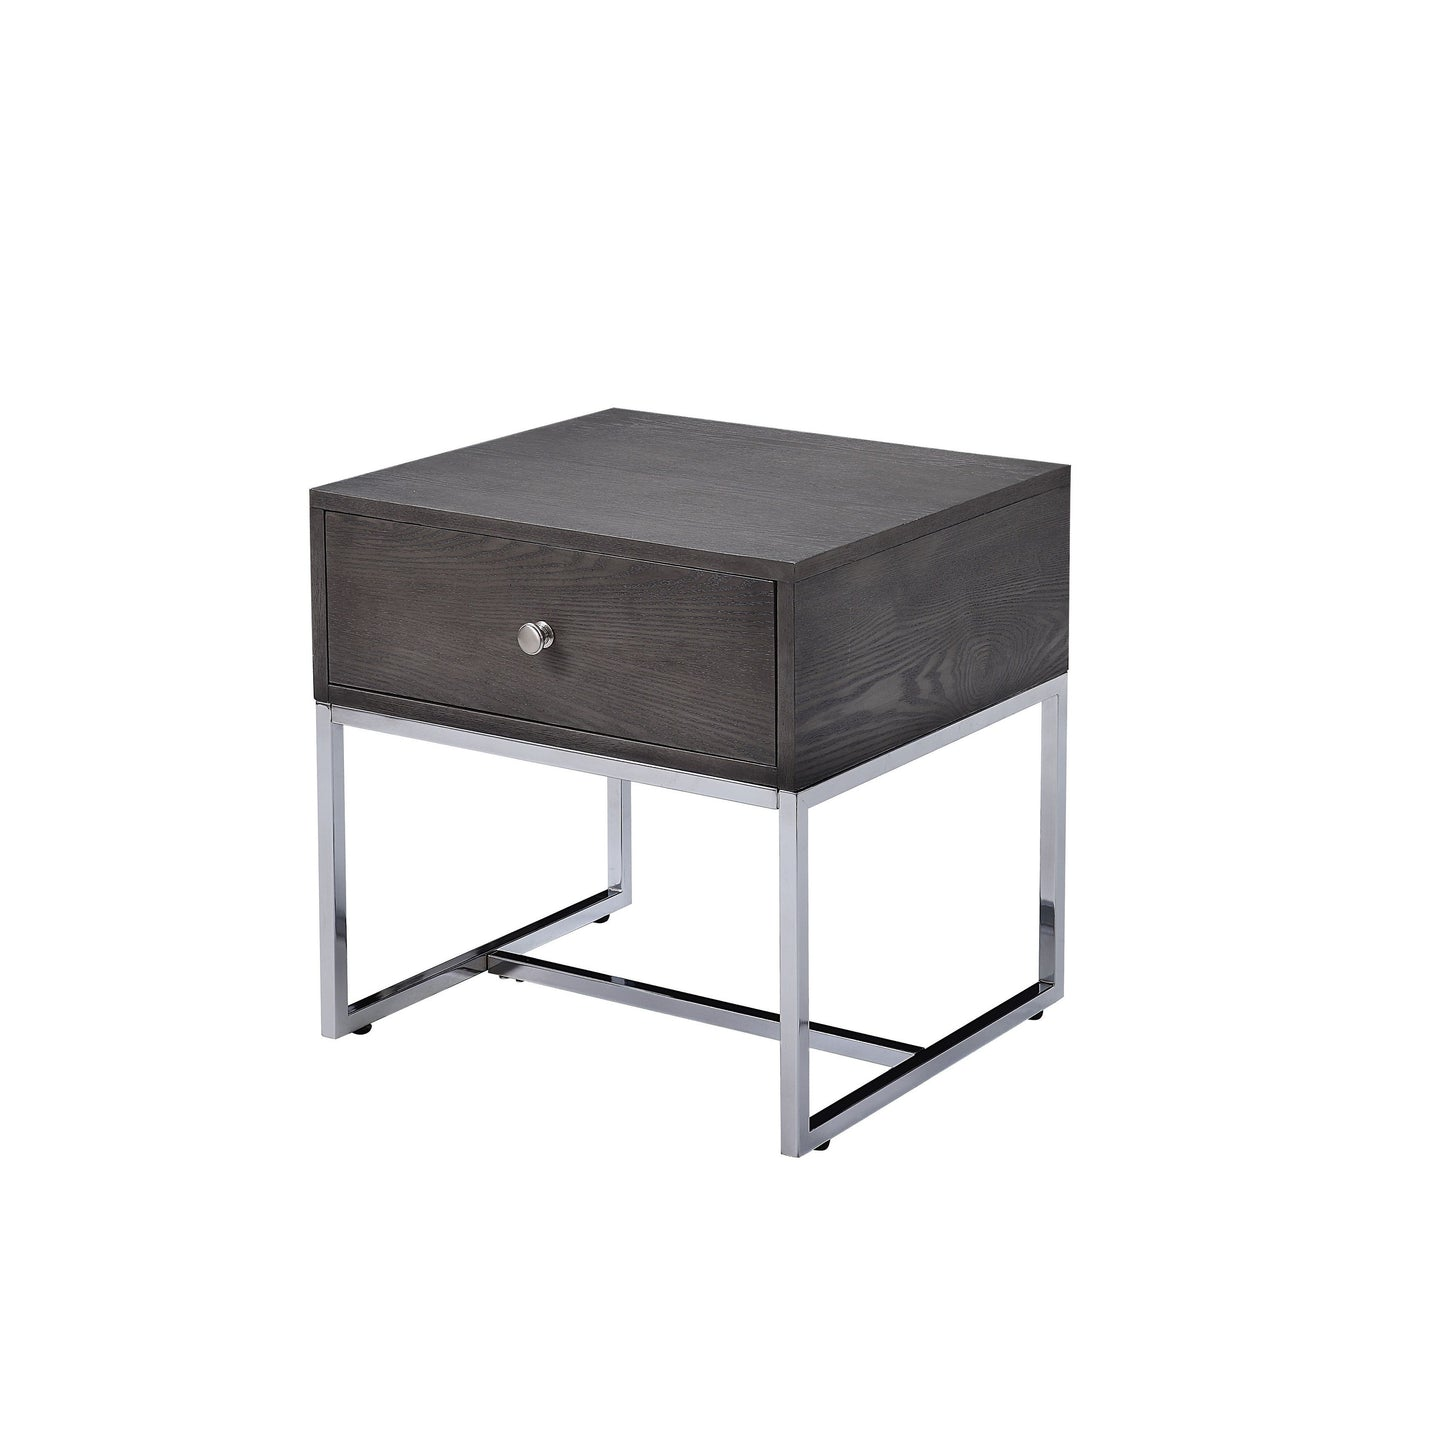 Acme 81172 Iban Gray Wood Finish End Table